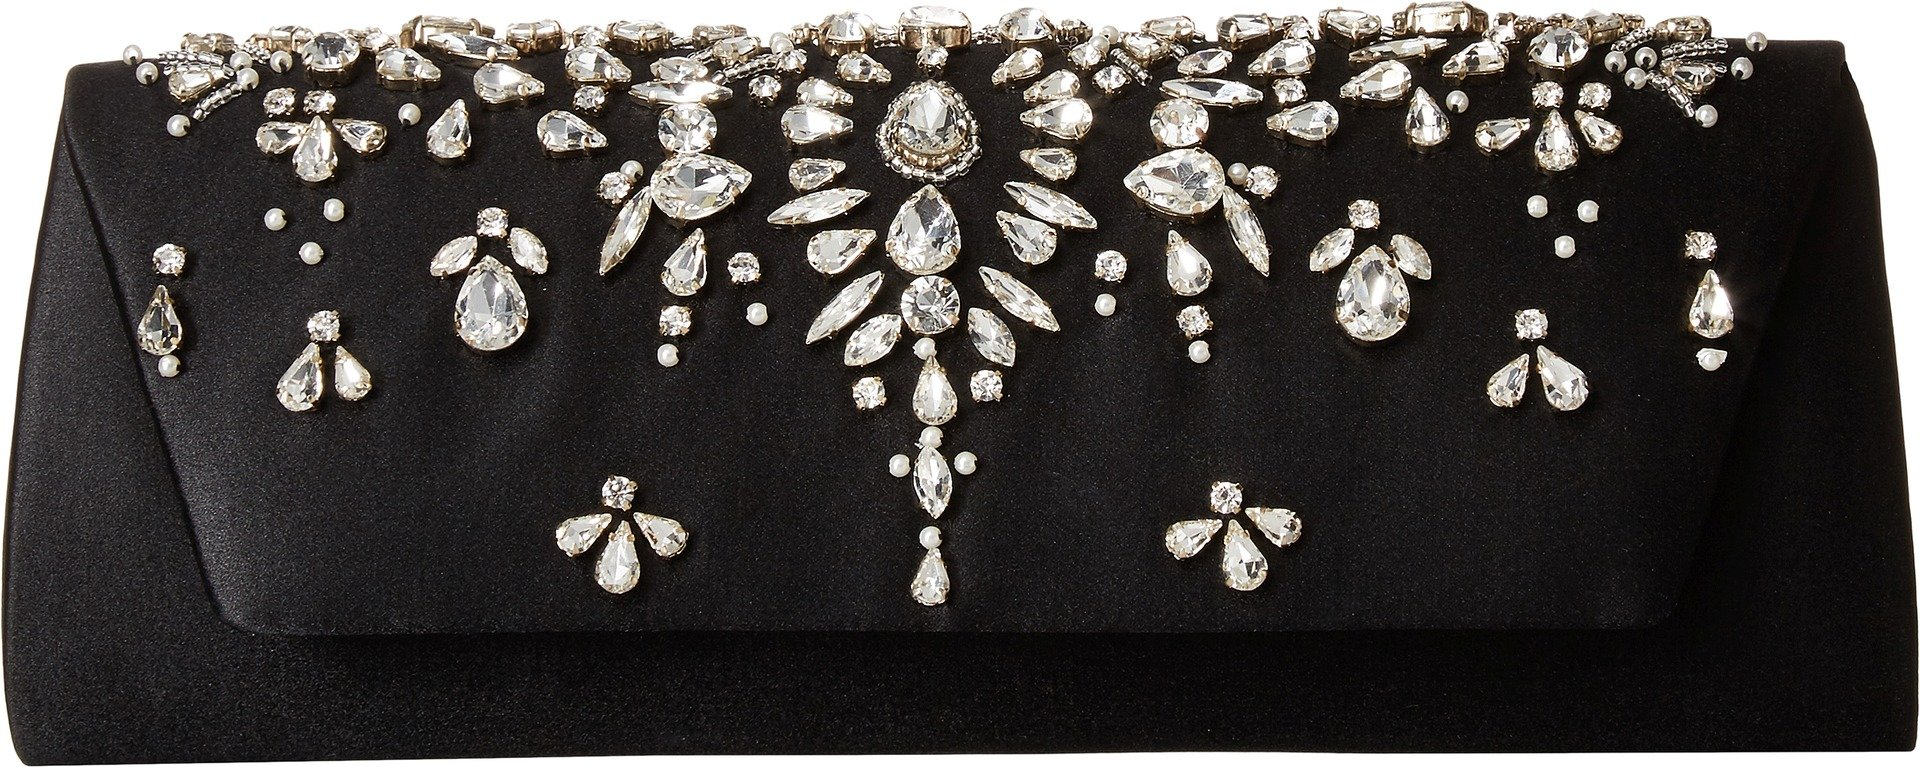 Badgley Mischka Women's Glory Clutch Black One Size